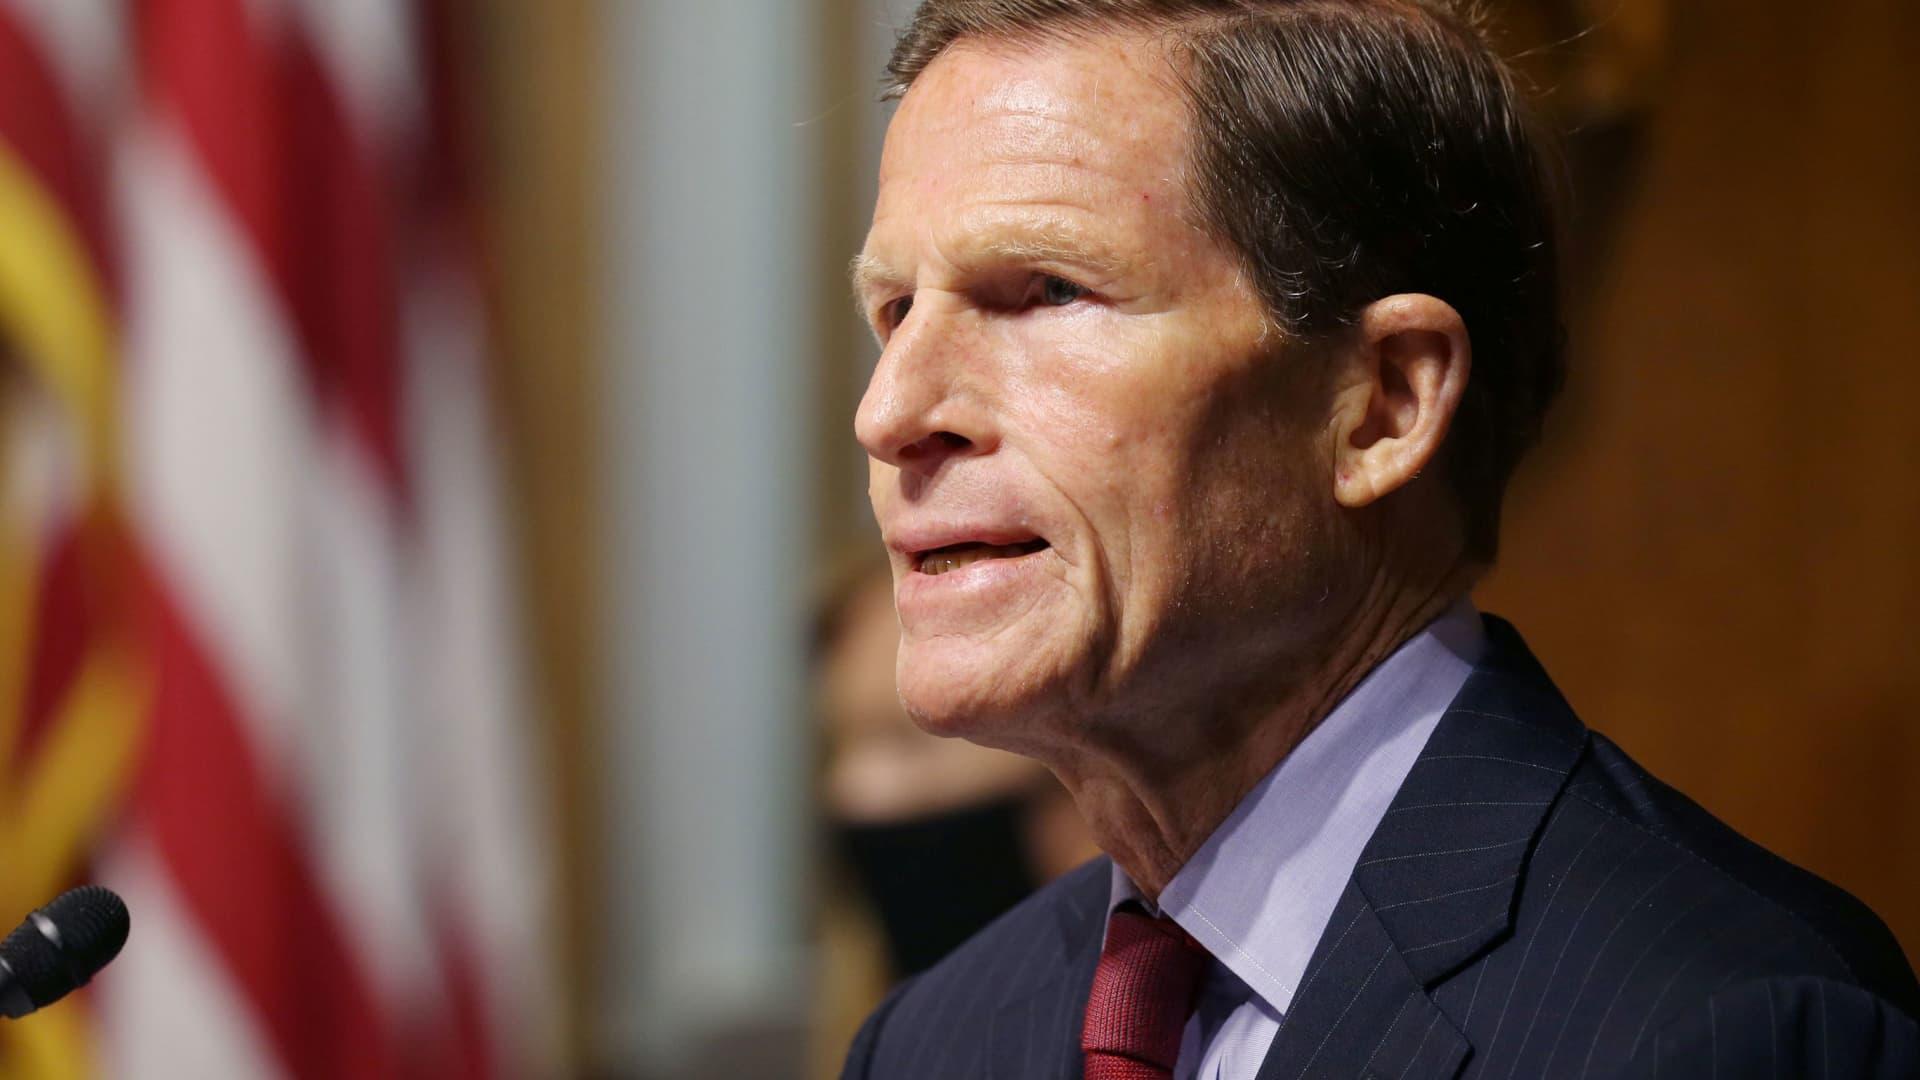 Sen. Richard Blumenthal, D-CT, asks questions during a hearing of the Senate Judiciary Subcommittee on Privacy, Technology, and the Law, at the U.S. Capitol in Washington DC, April 27, 2021.